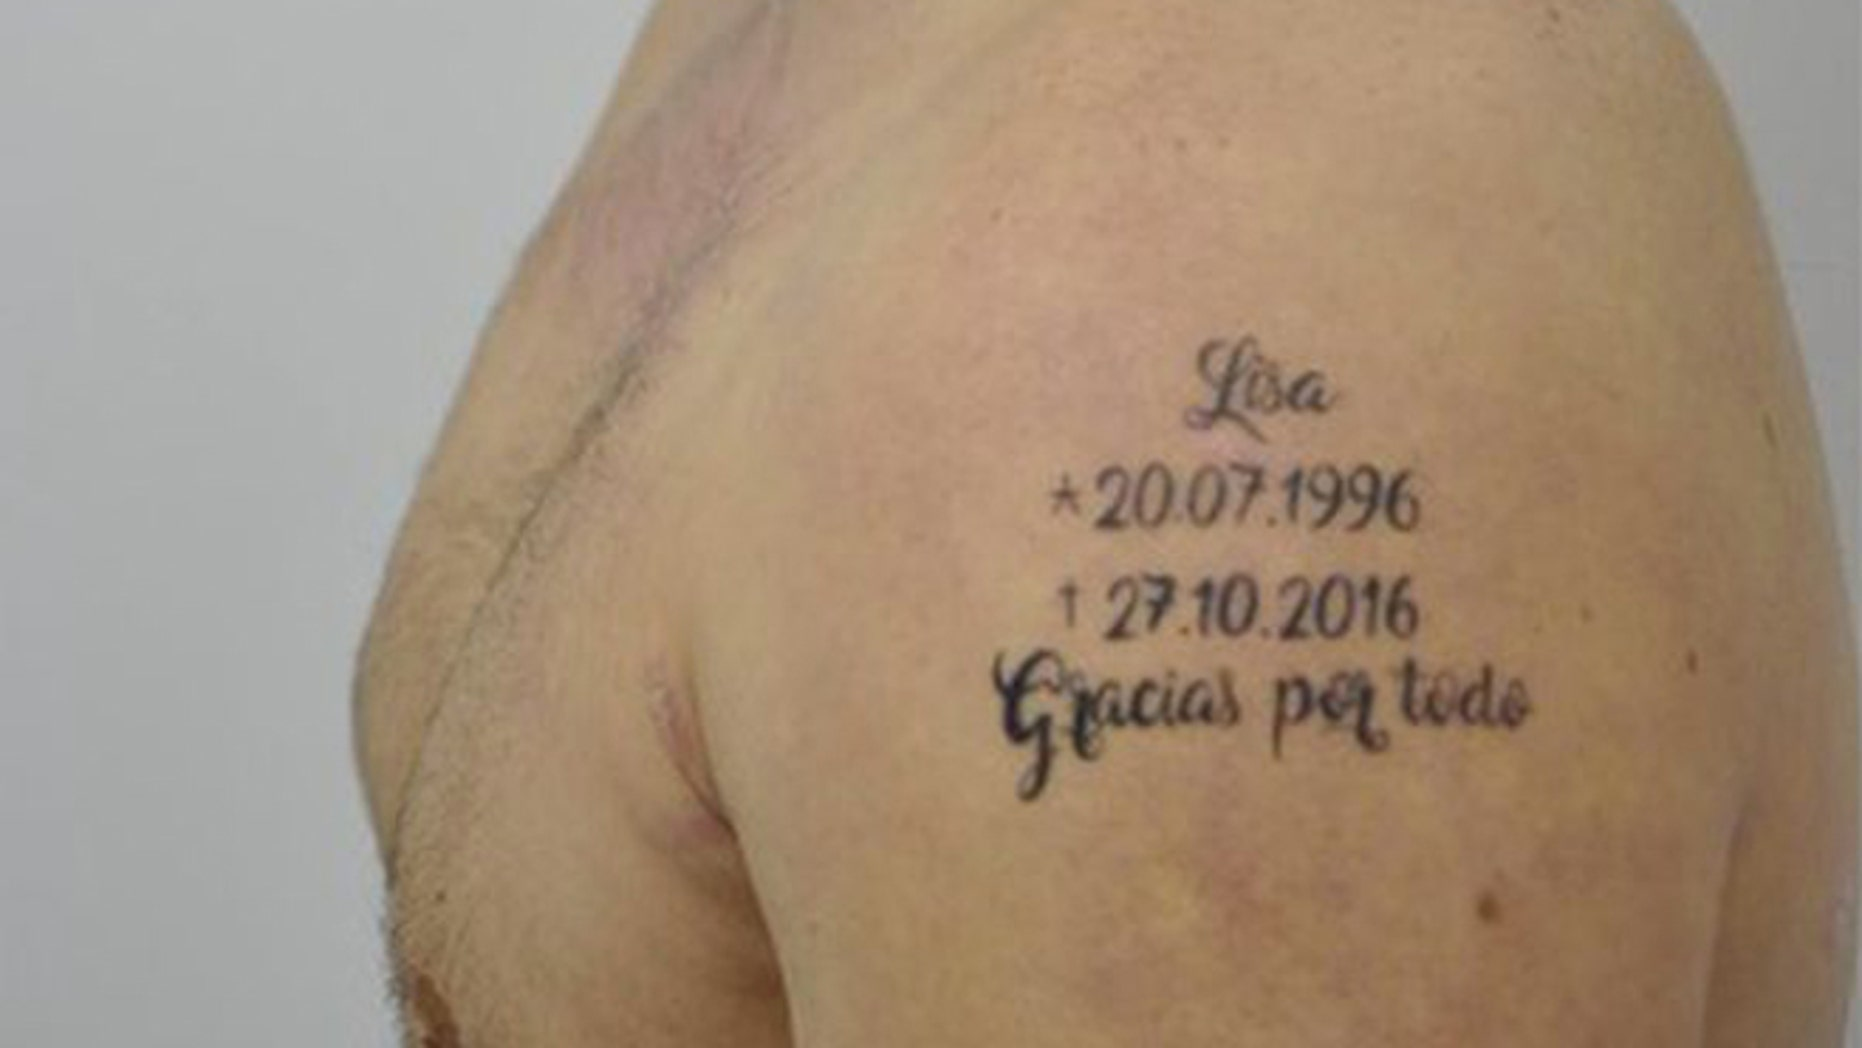 A close-up of the tell-tale tattoo. (Photo: Spain's Policia Nacional)